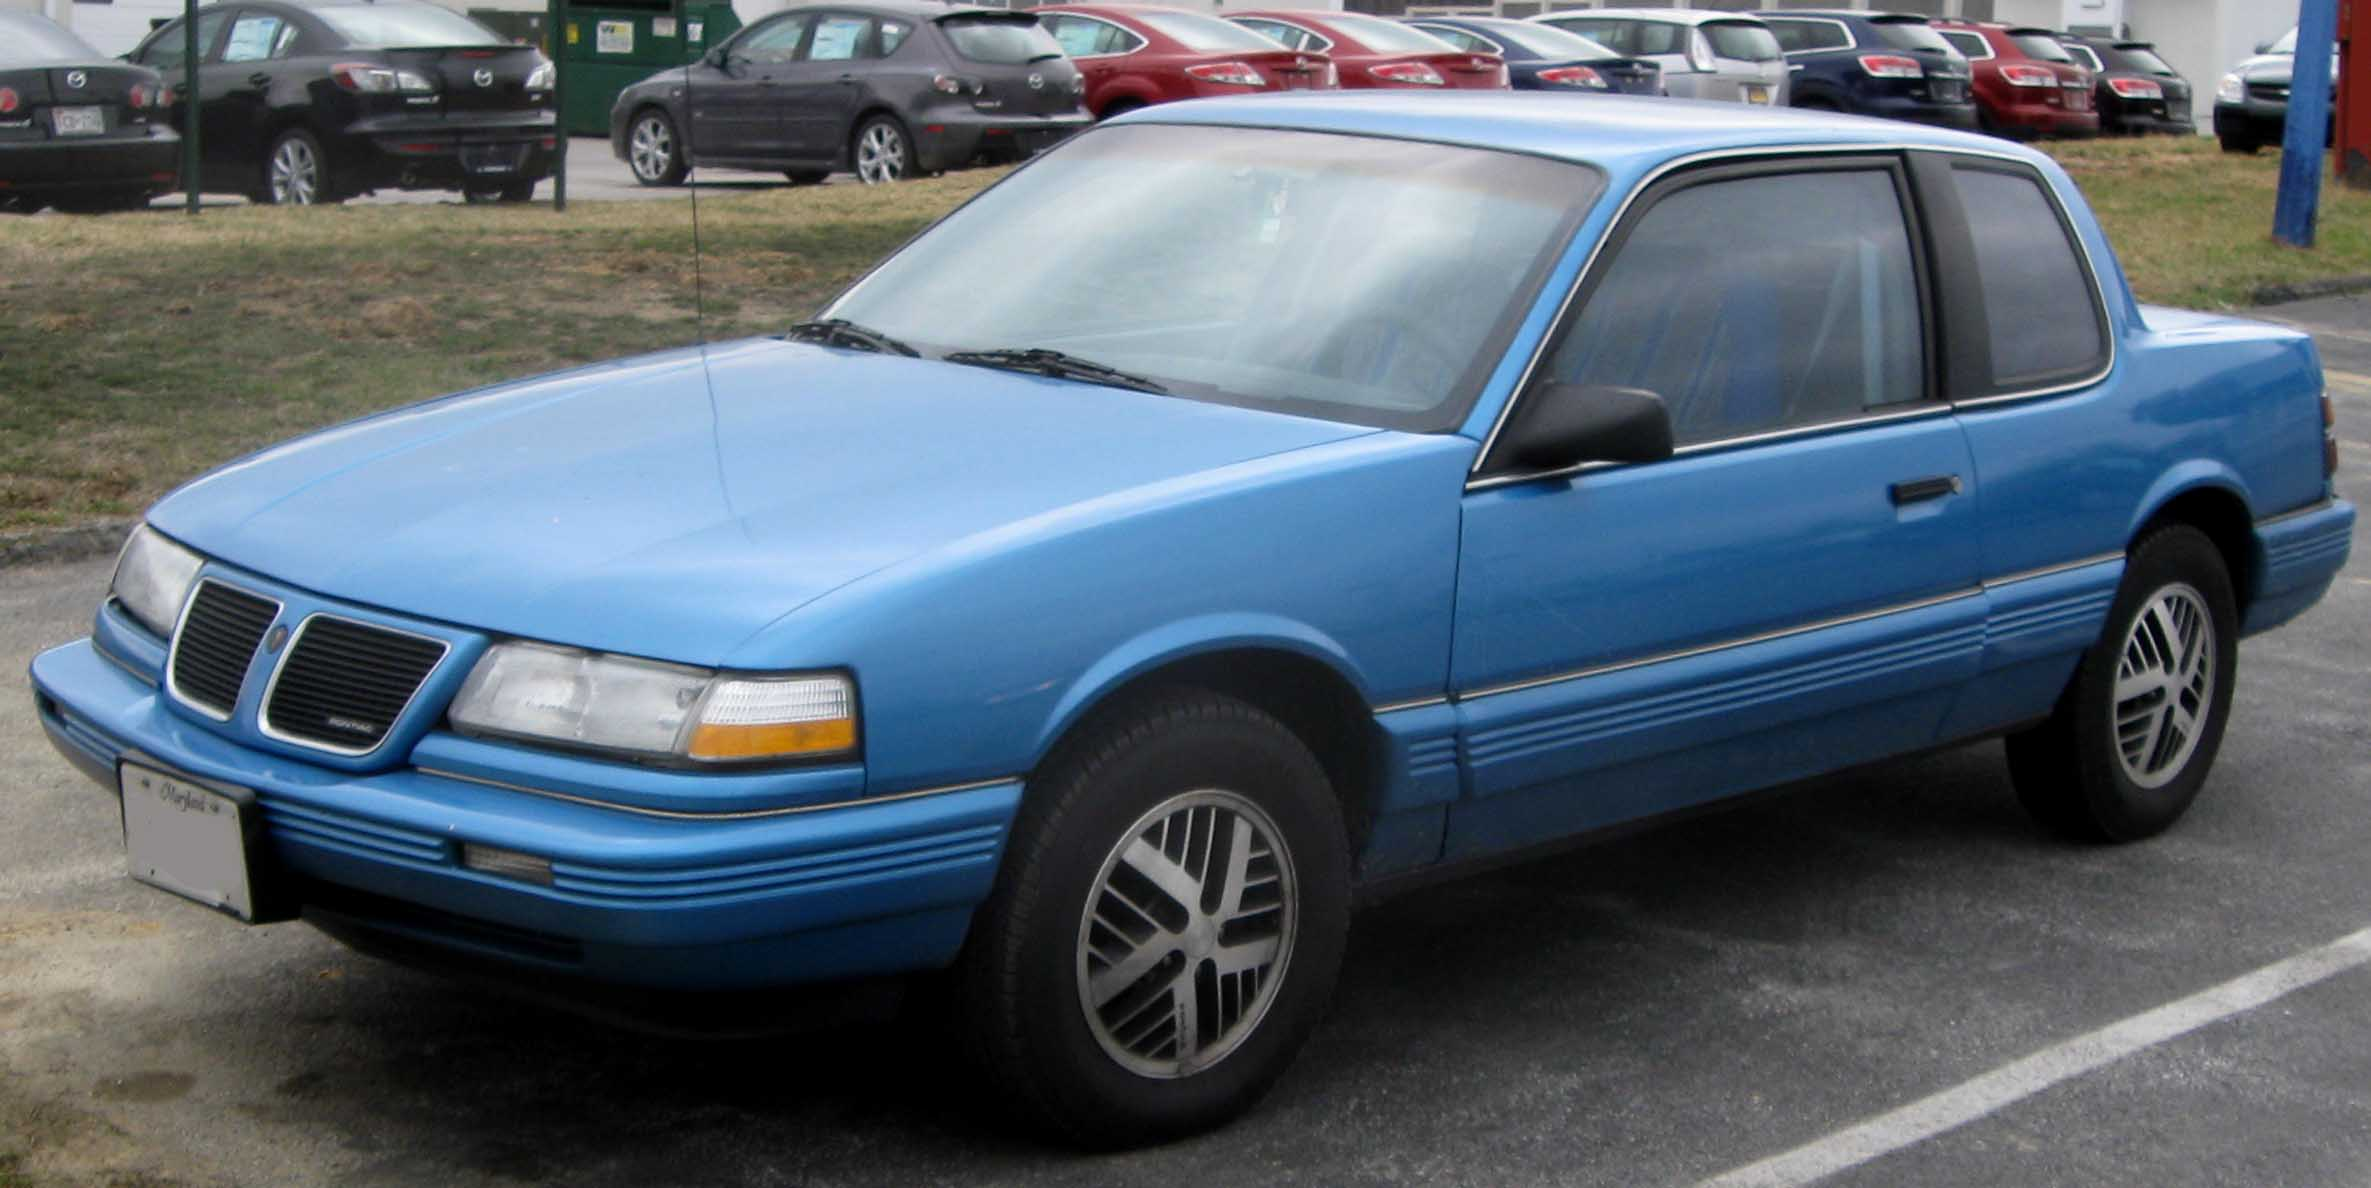 1991 Pontiac Grand Am #1